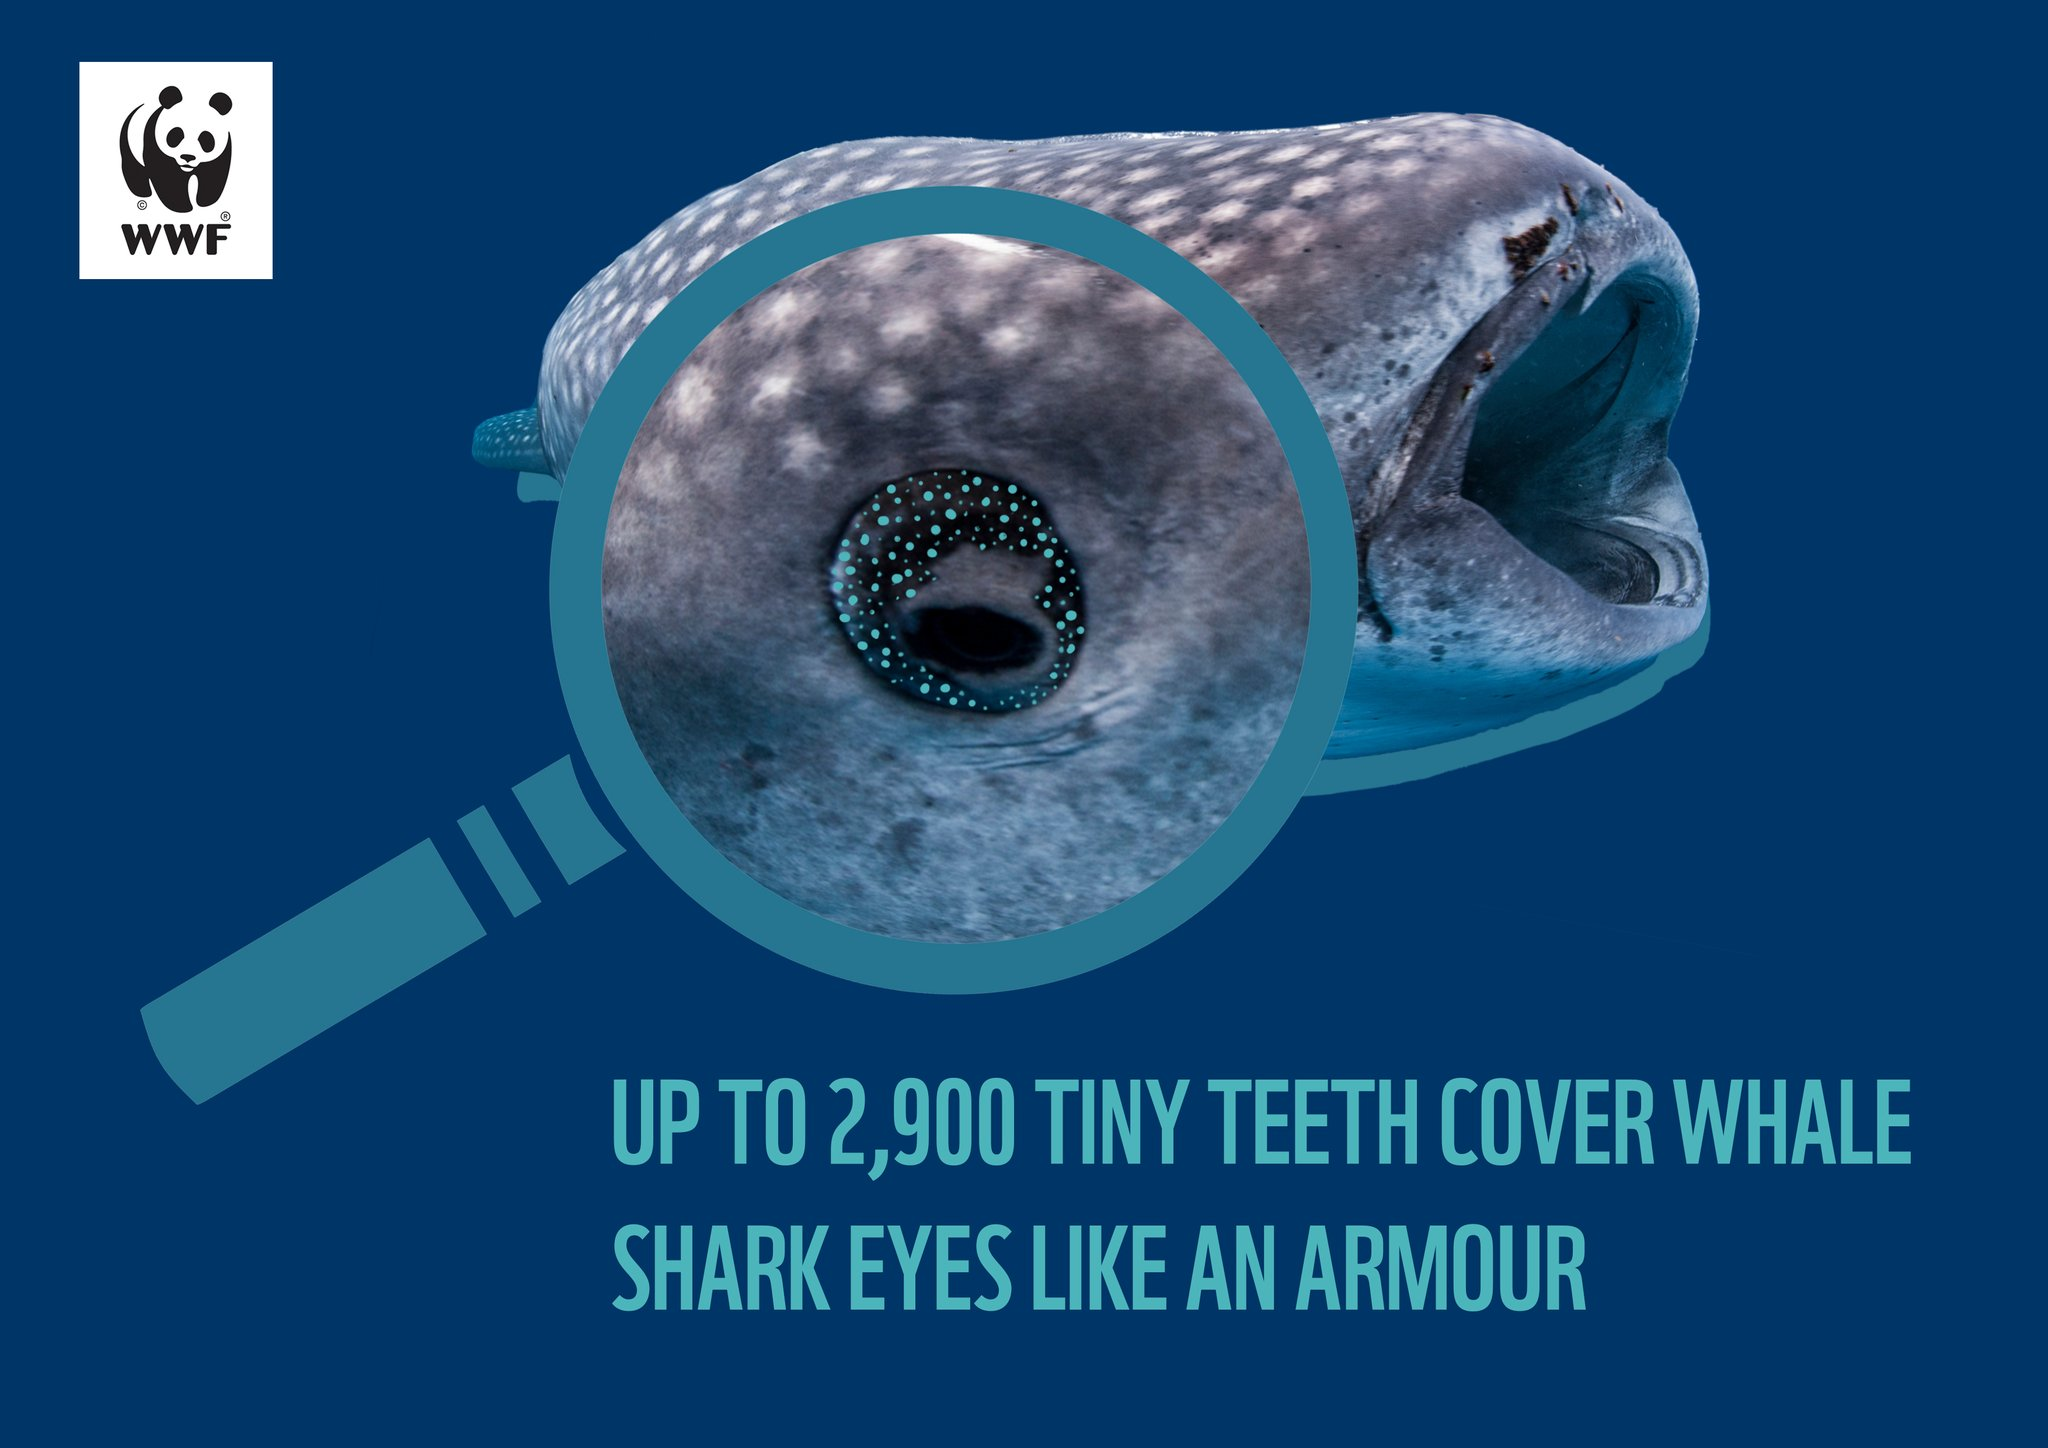 It's #WhaleSharkDay! #DidYouKnow that as many as 2,900 tiny teeth cover each eye of a #WhaleShark? This unique armour protects the eyes of this gentle giant from injuries. https://t.co/5A6scEn3kx